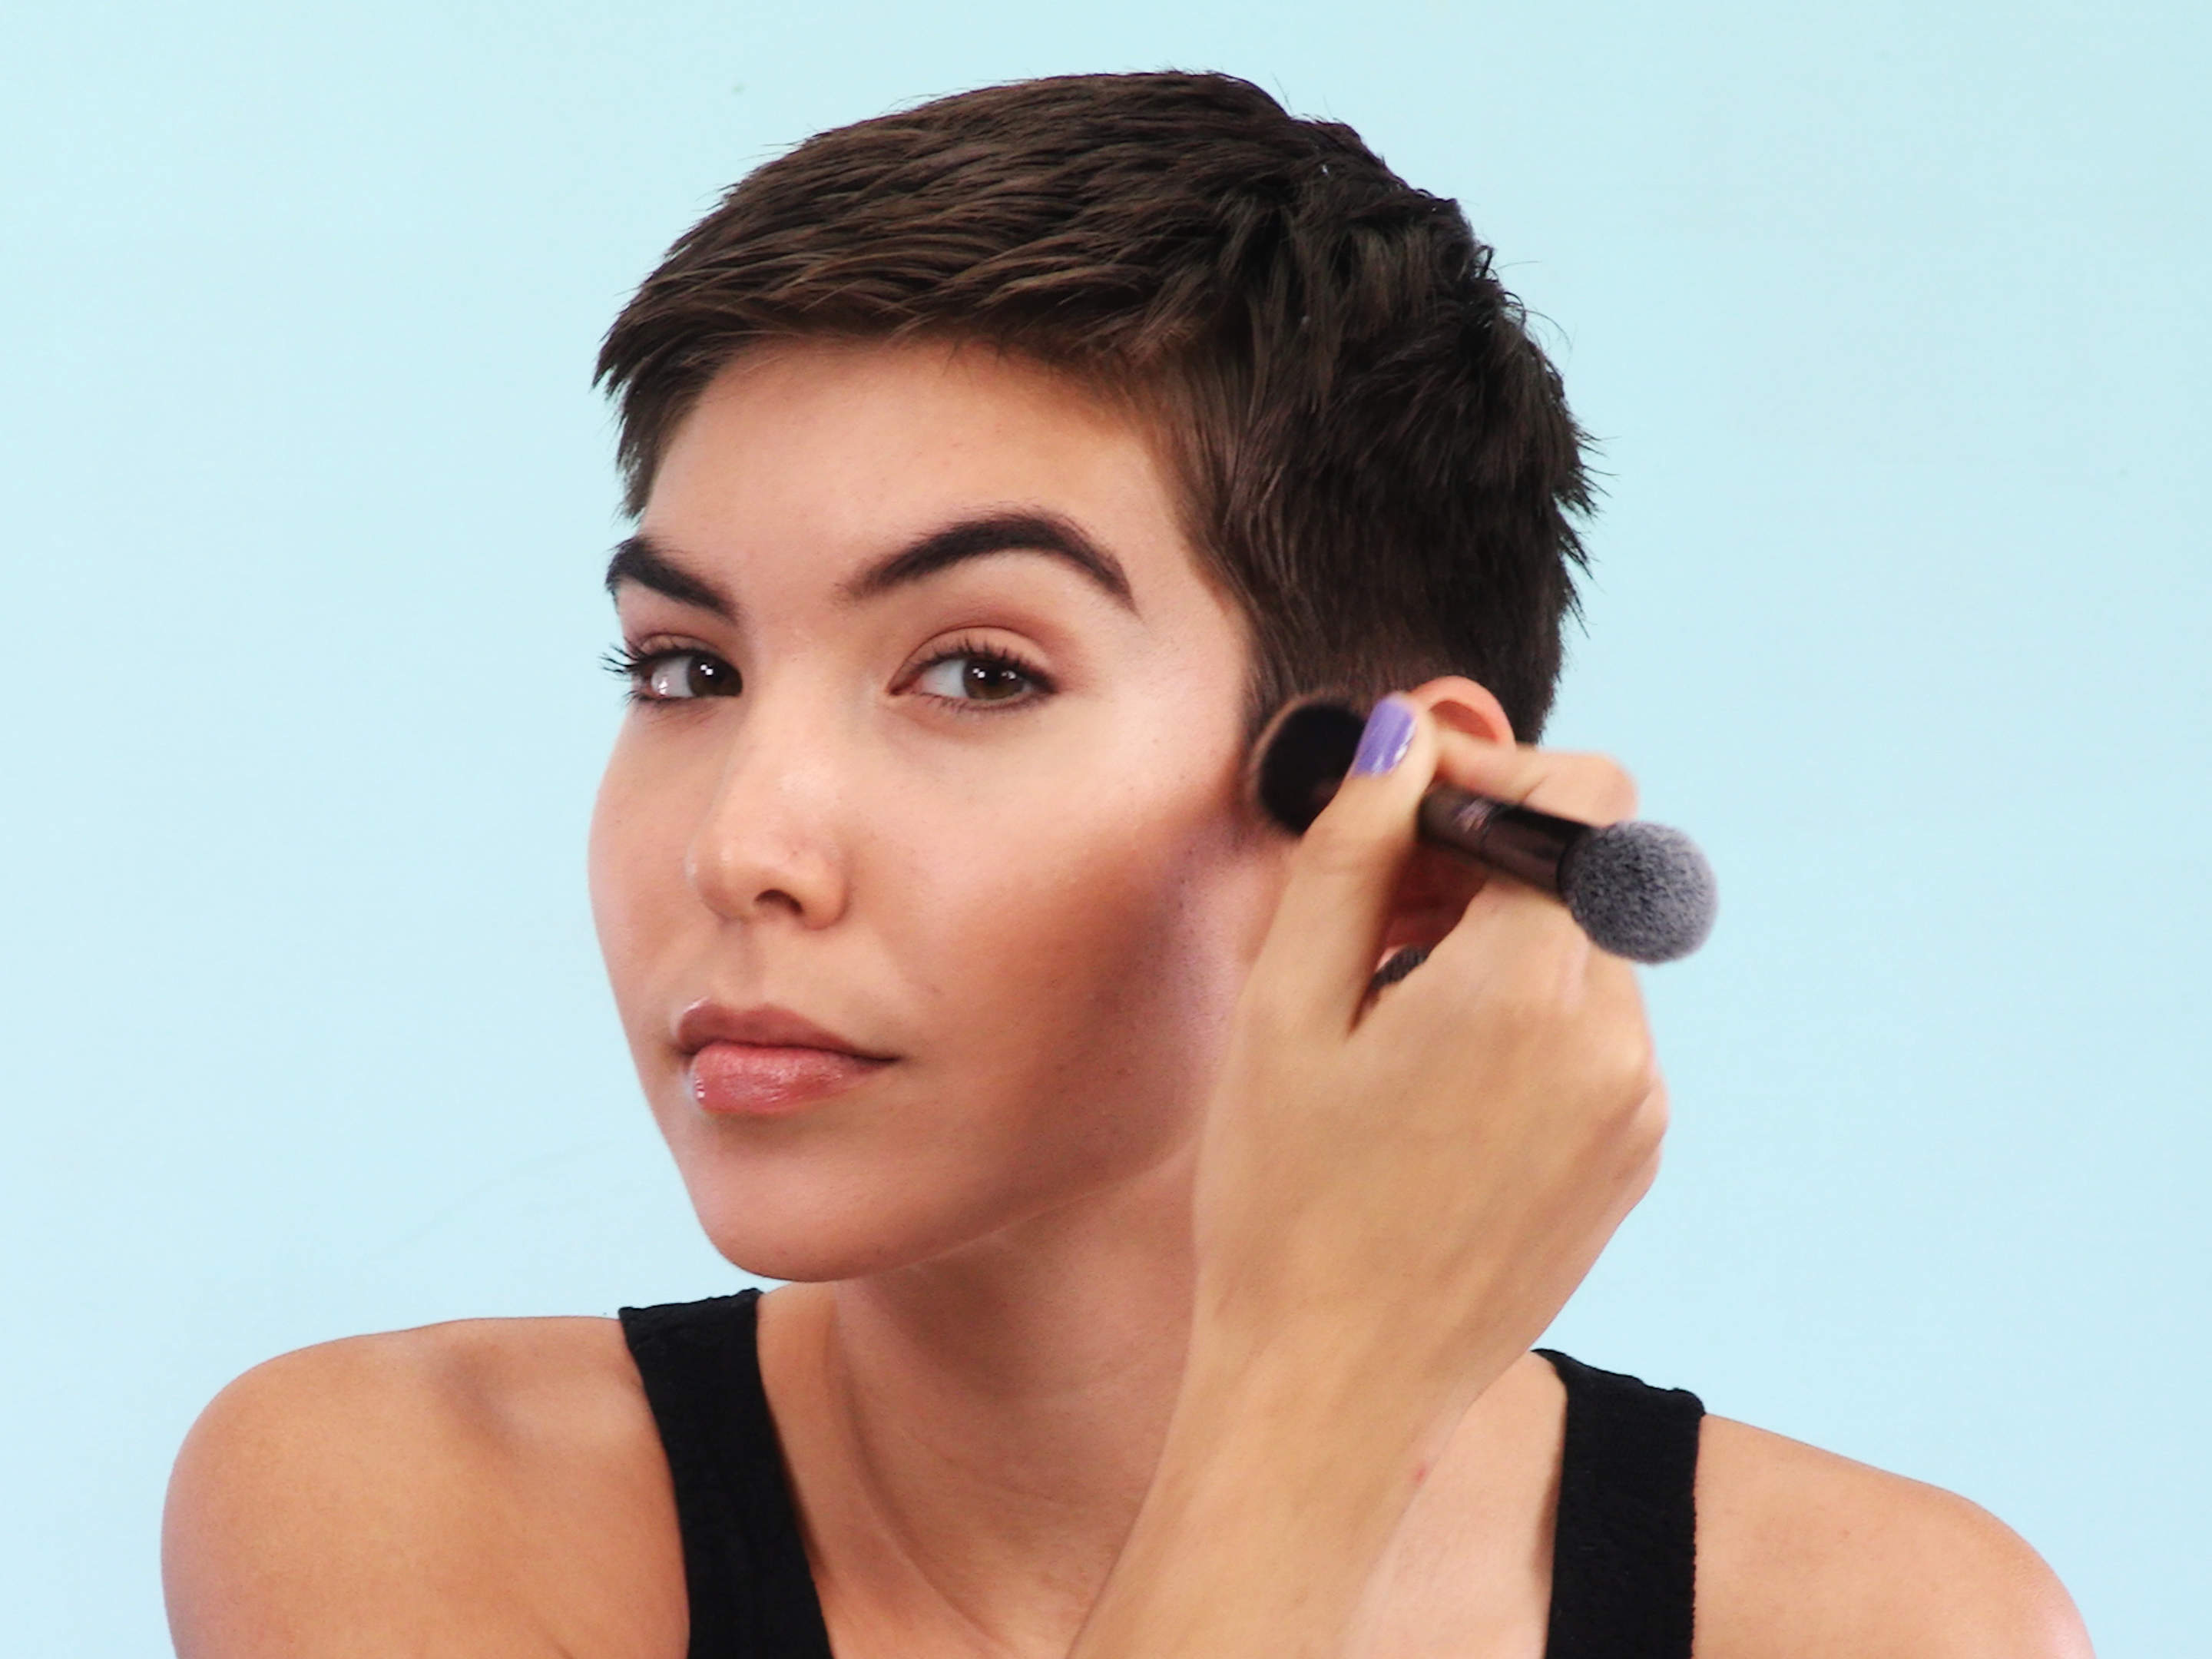 a-step-by-step-guide-to-contouring-video